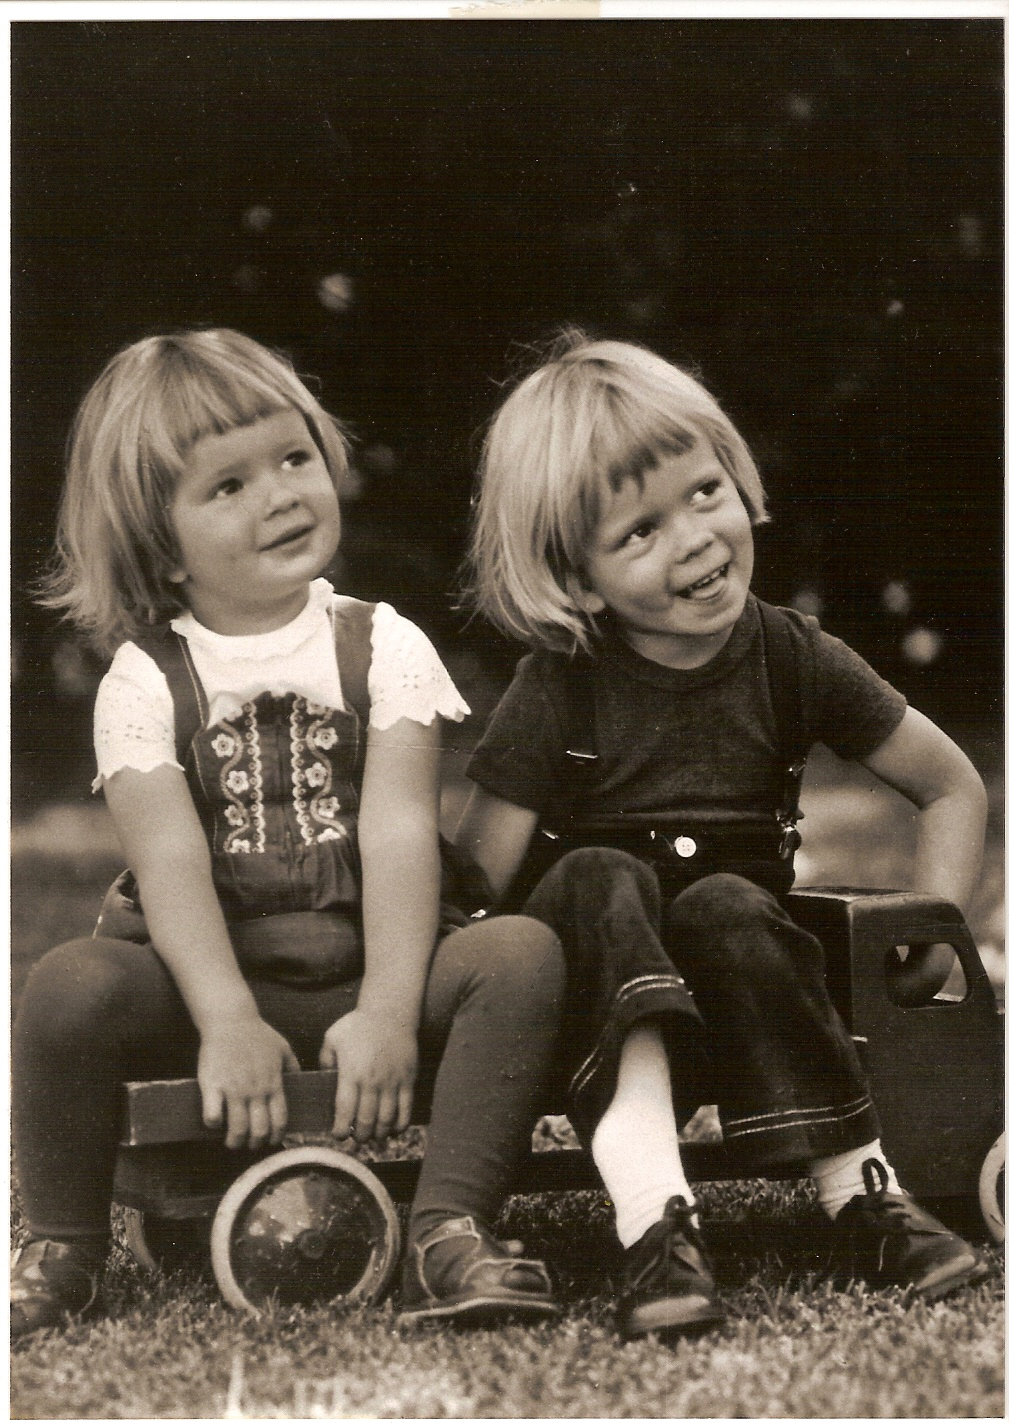 Ilona and her brother Mika, Argentina 1975